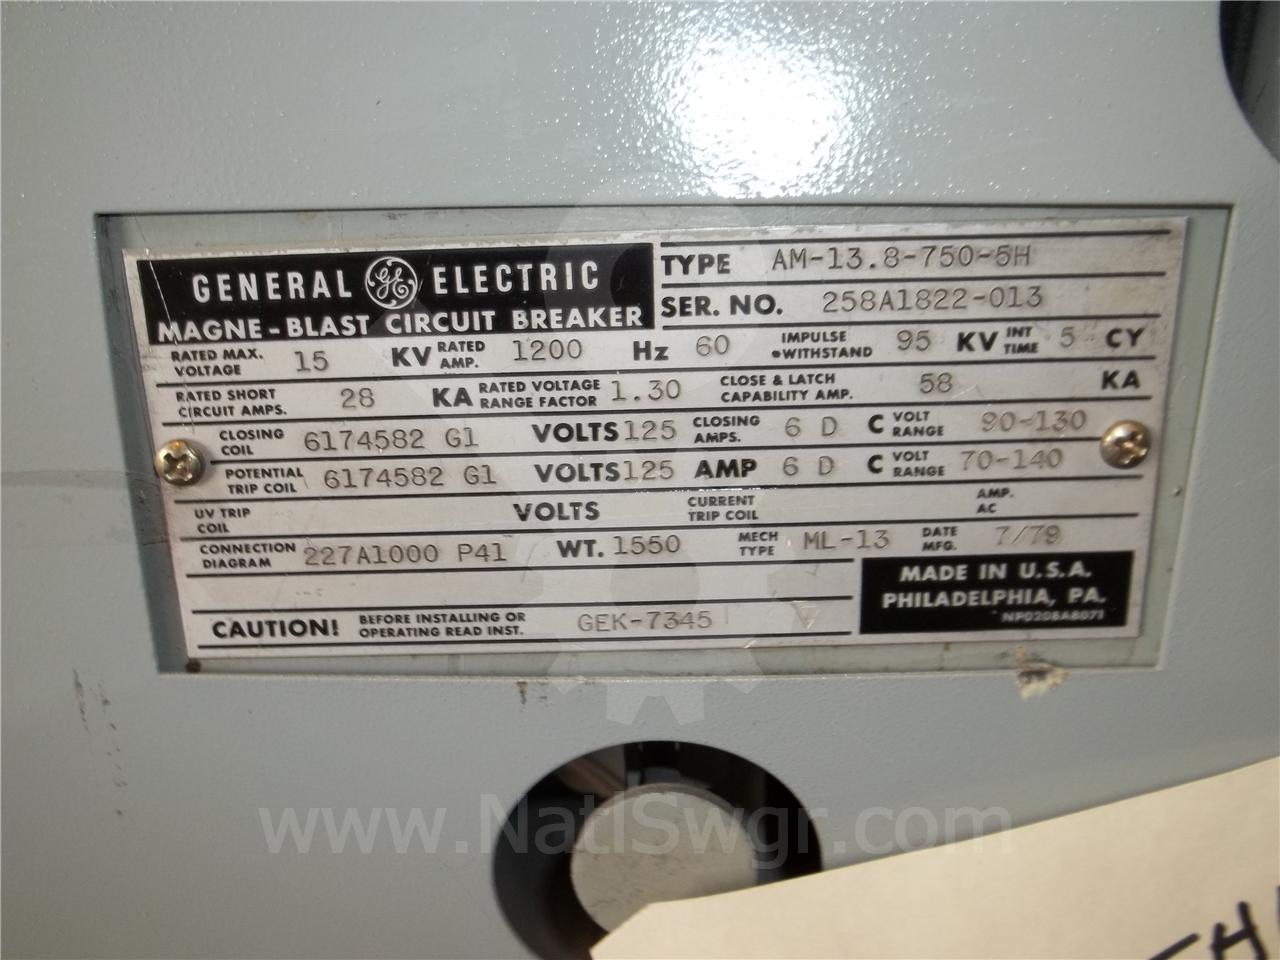 General Electric AM 13.8-750 1200A GE AM-13.8-750-5H ML-13